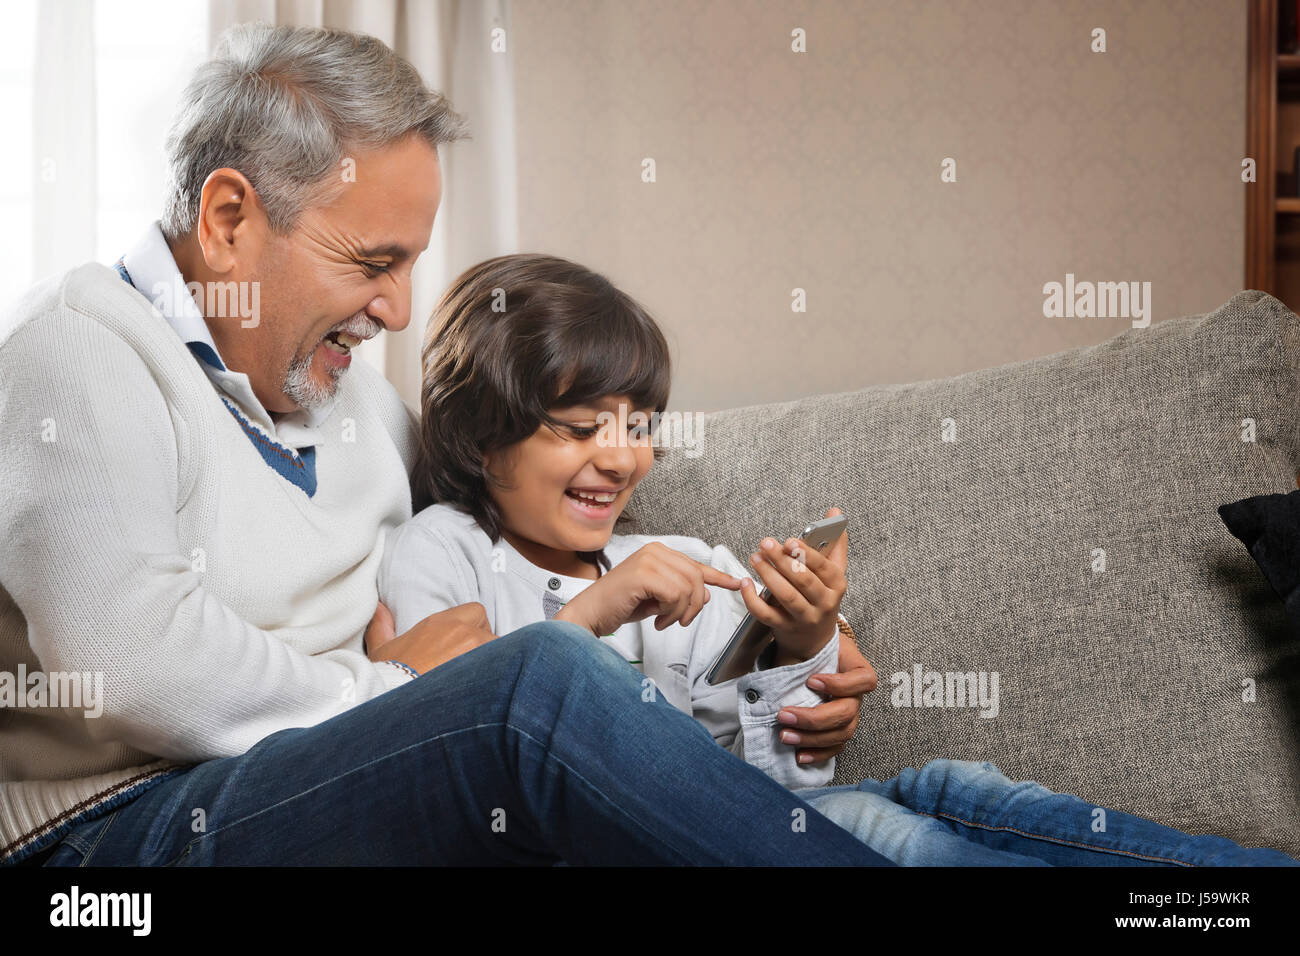 Happy grandfather and grandson using cell phone - Stock-Bilder